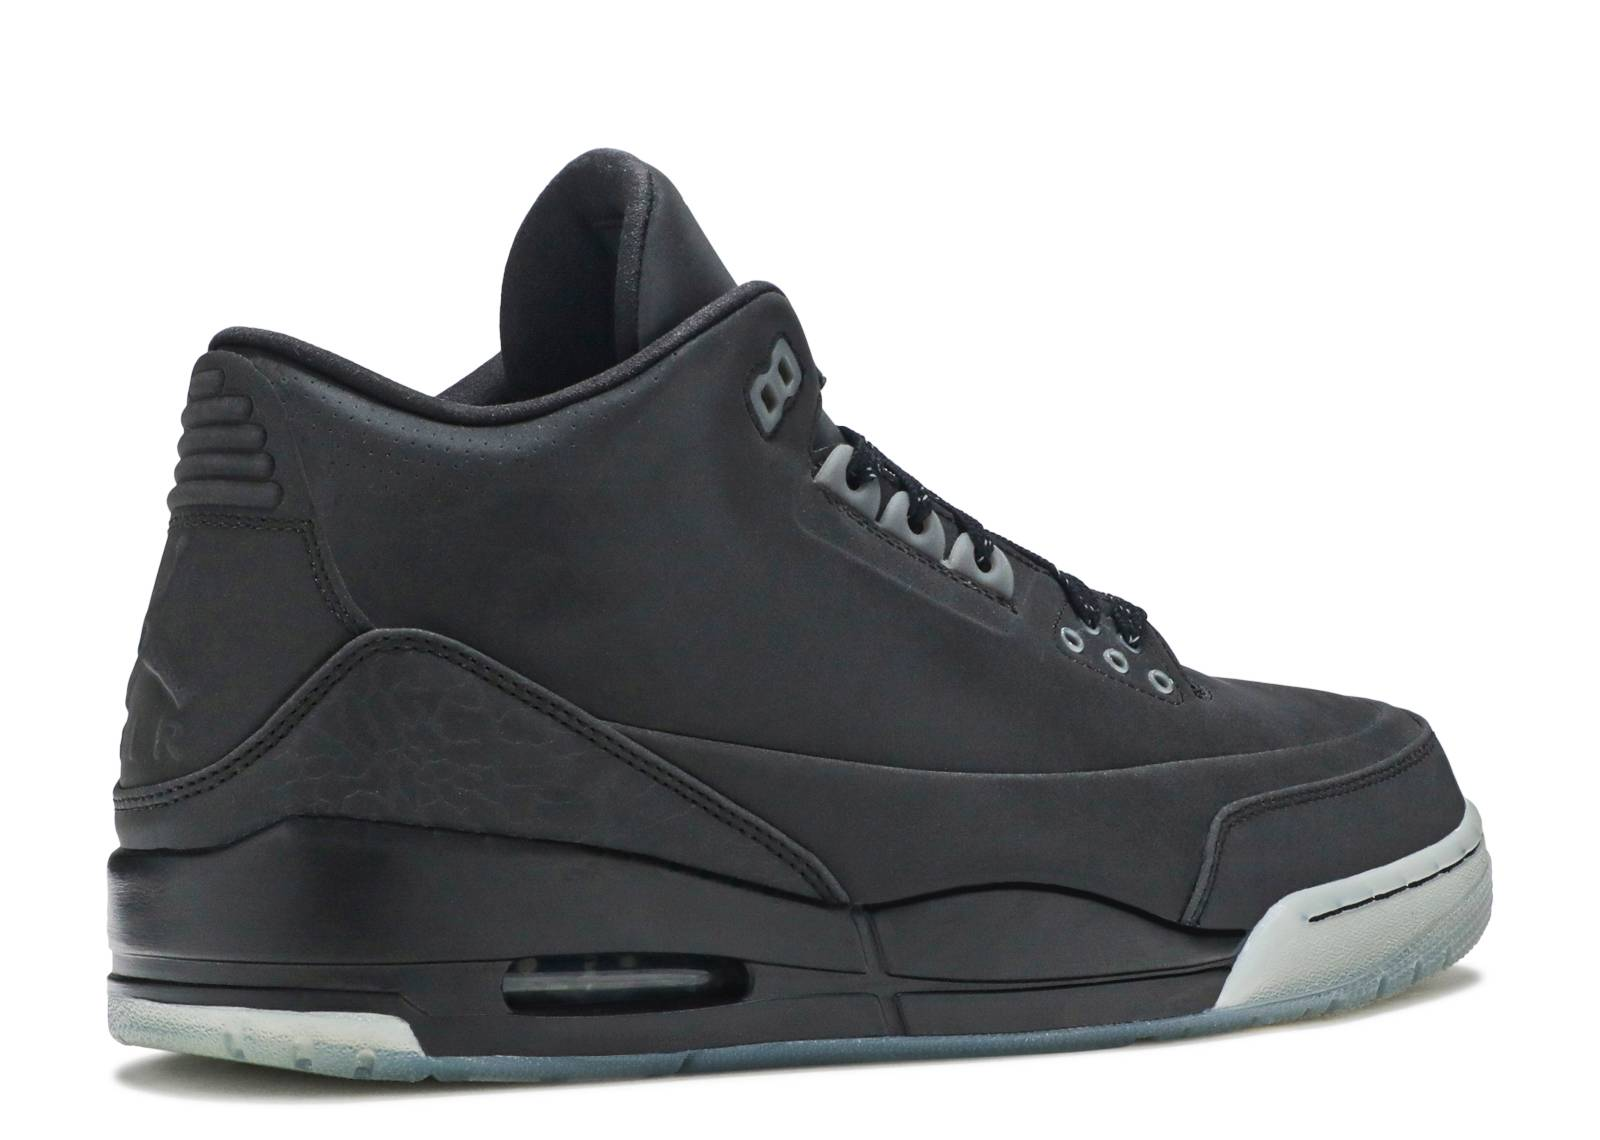 8433d85ccb6146 ... where can i buy air jordan 3 5lab3 air jordan 631603 010 black black  clear flight